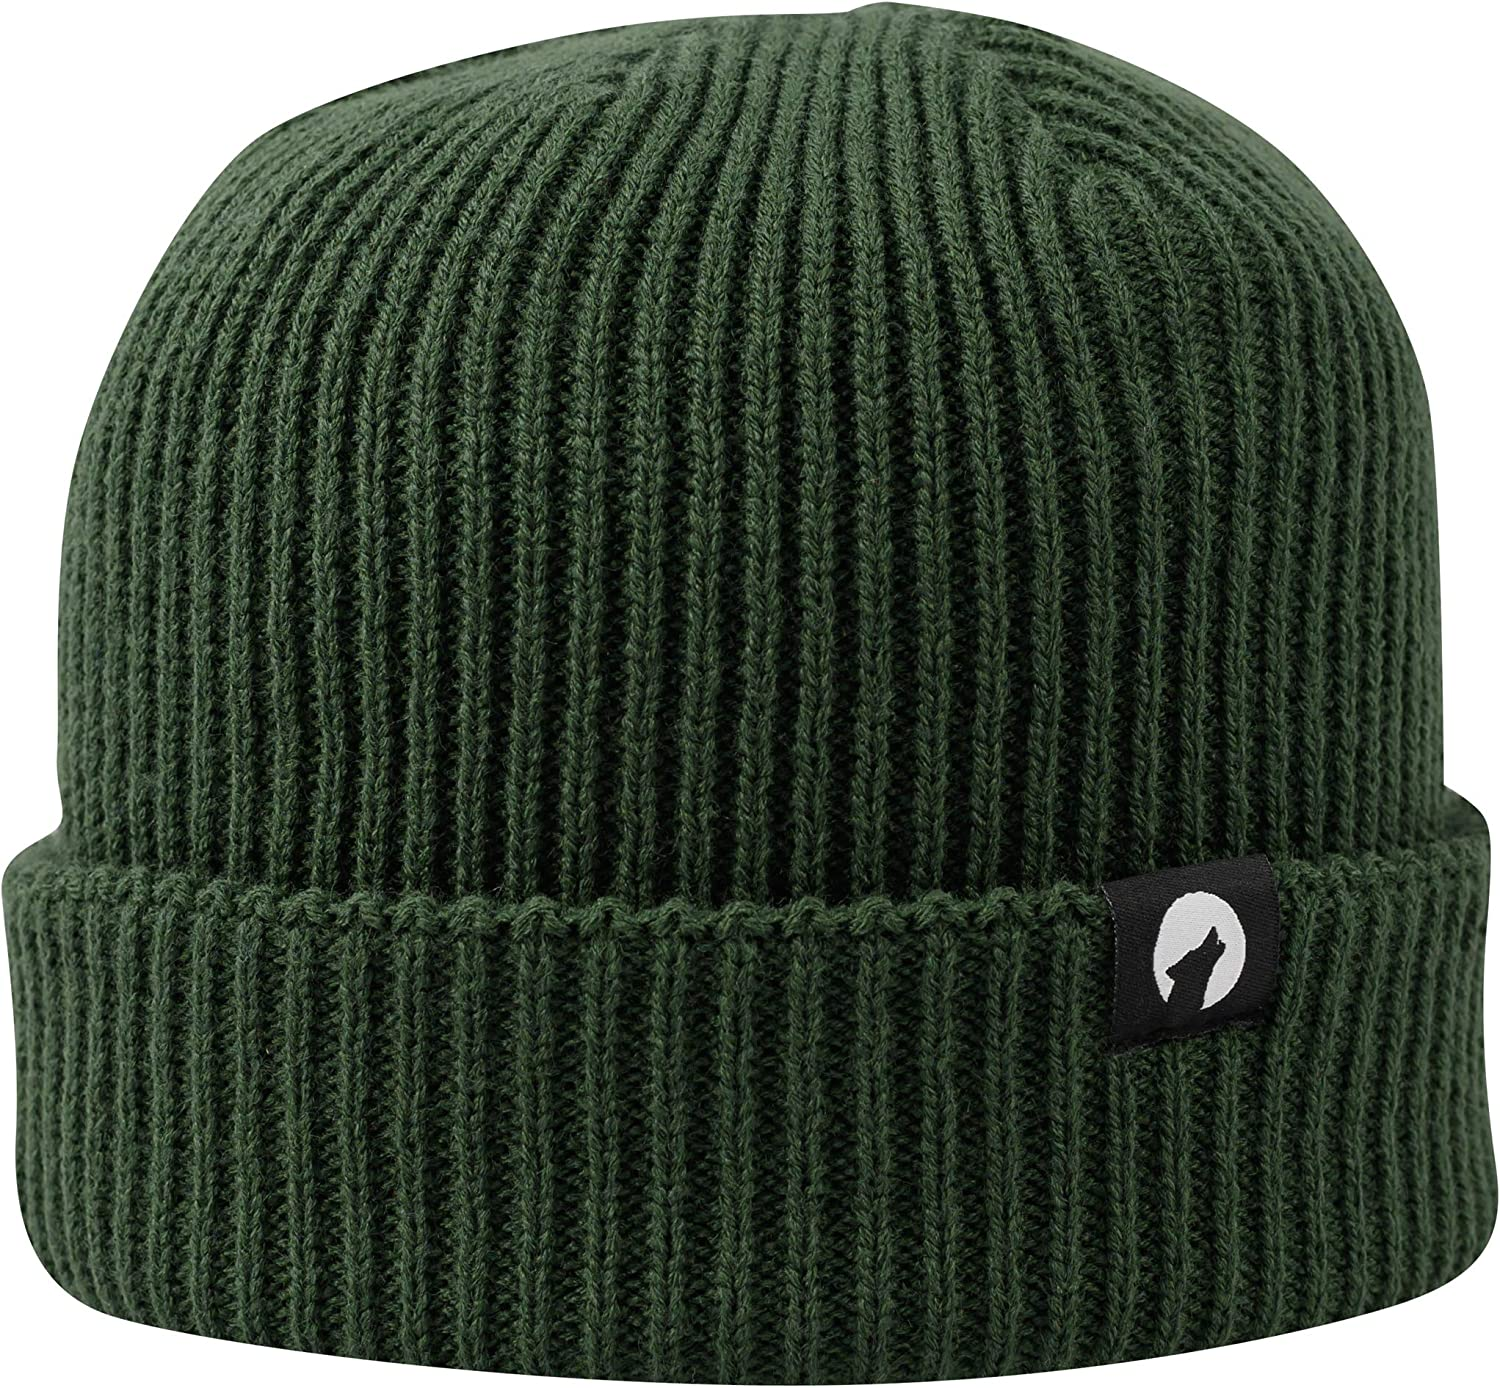 Lupa Kids Junior Unisex Canadian-Made Sales for sale Hat Beanie Credence Slouch Cuff